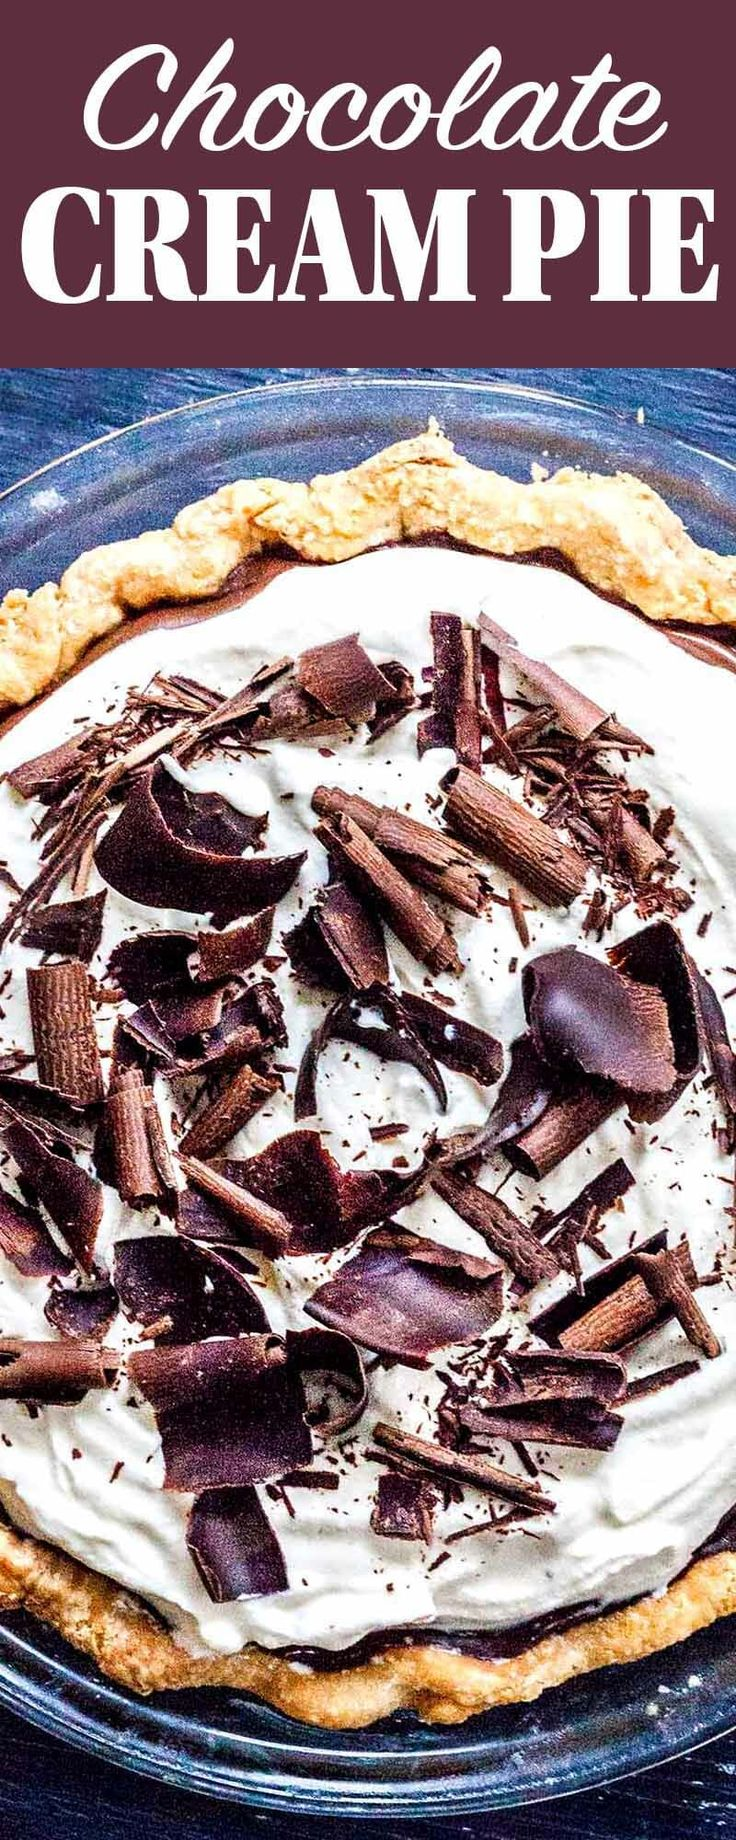 Easy Chocolate Cream Pie Recipe | SimplyRecipes.com